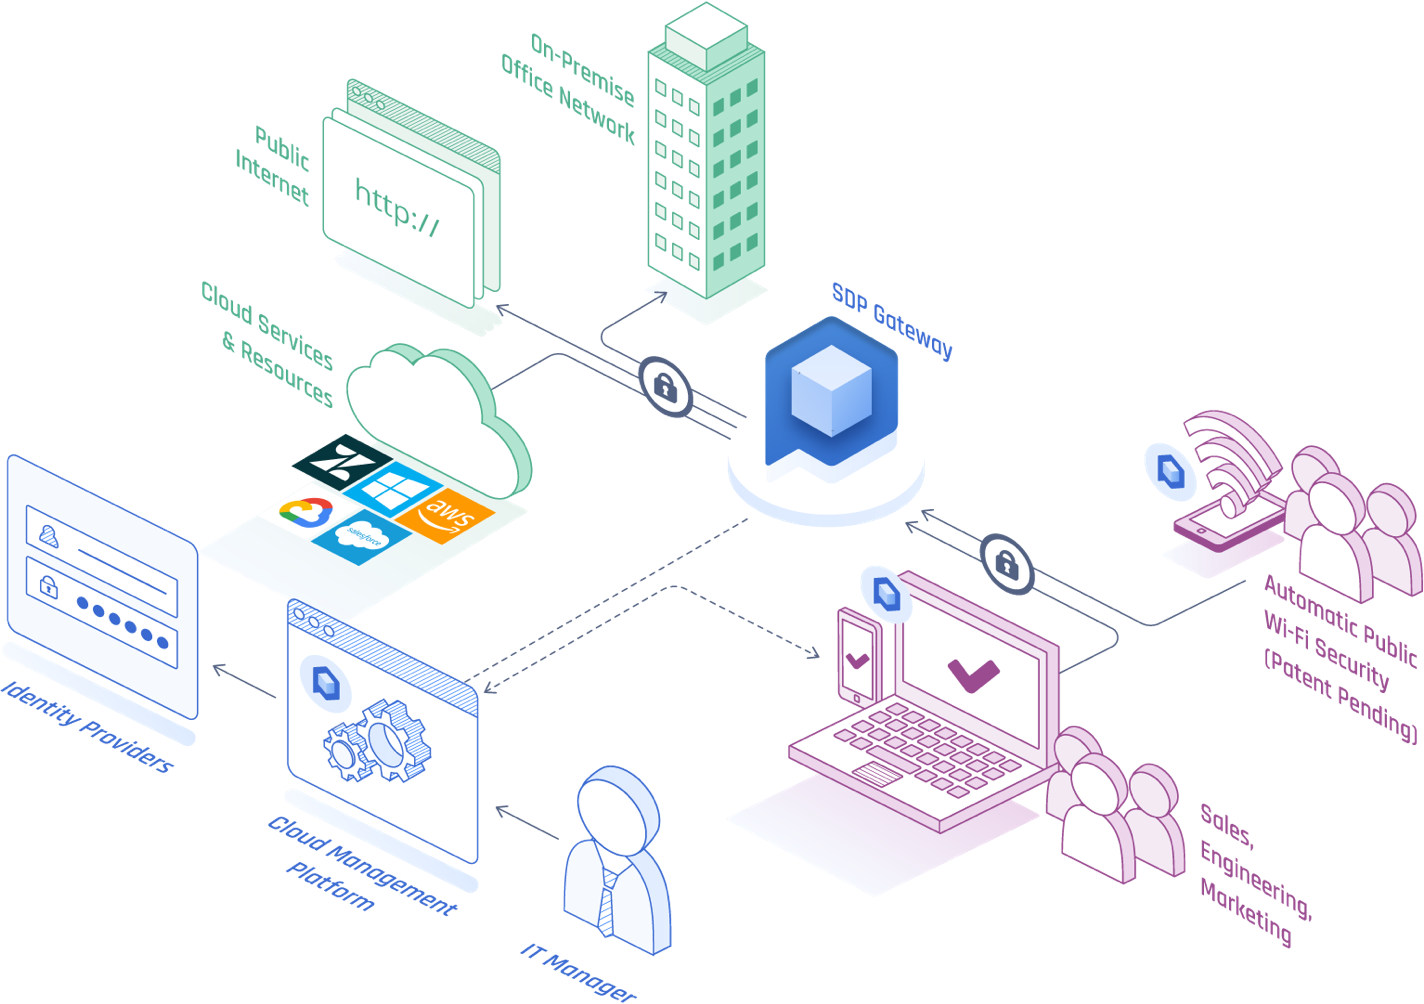 b2b-enterprise-intro__isometric-diagram_2x